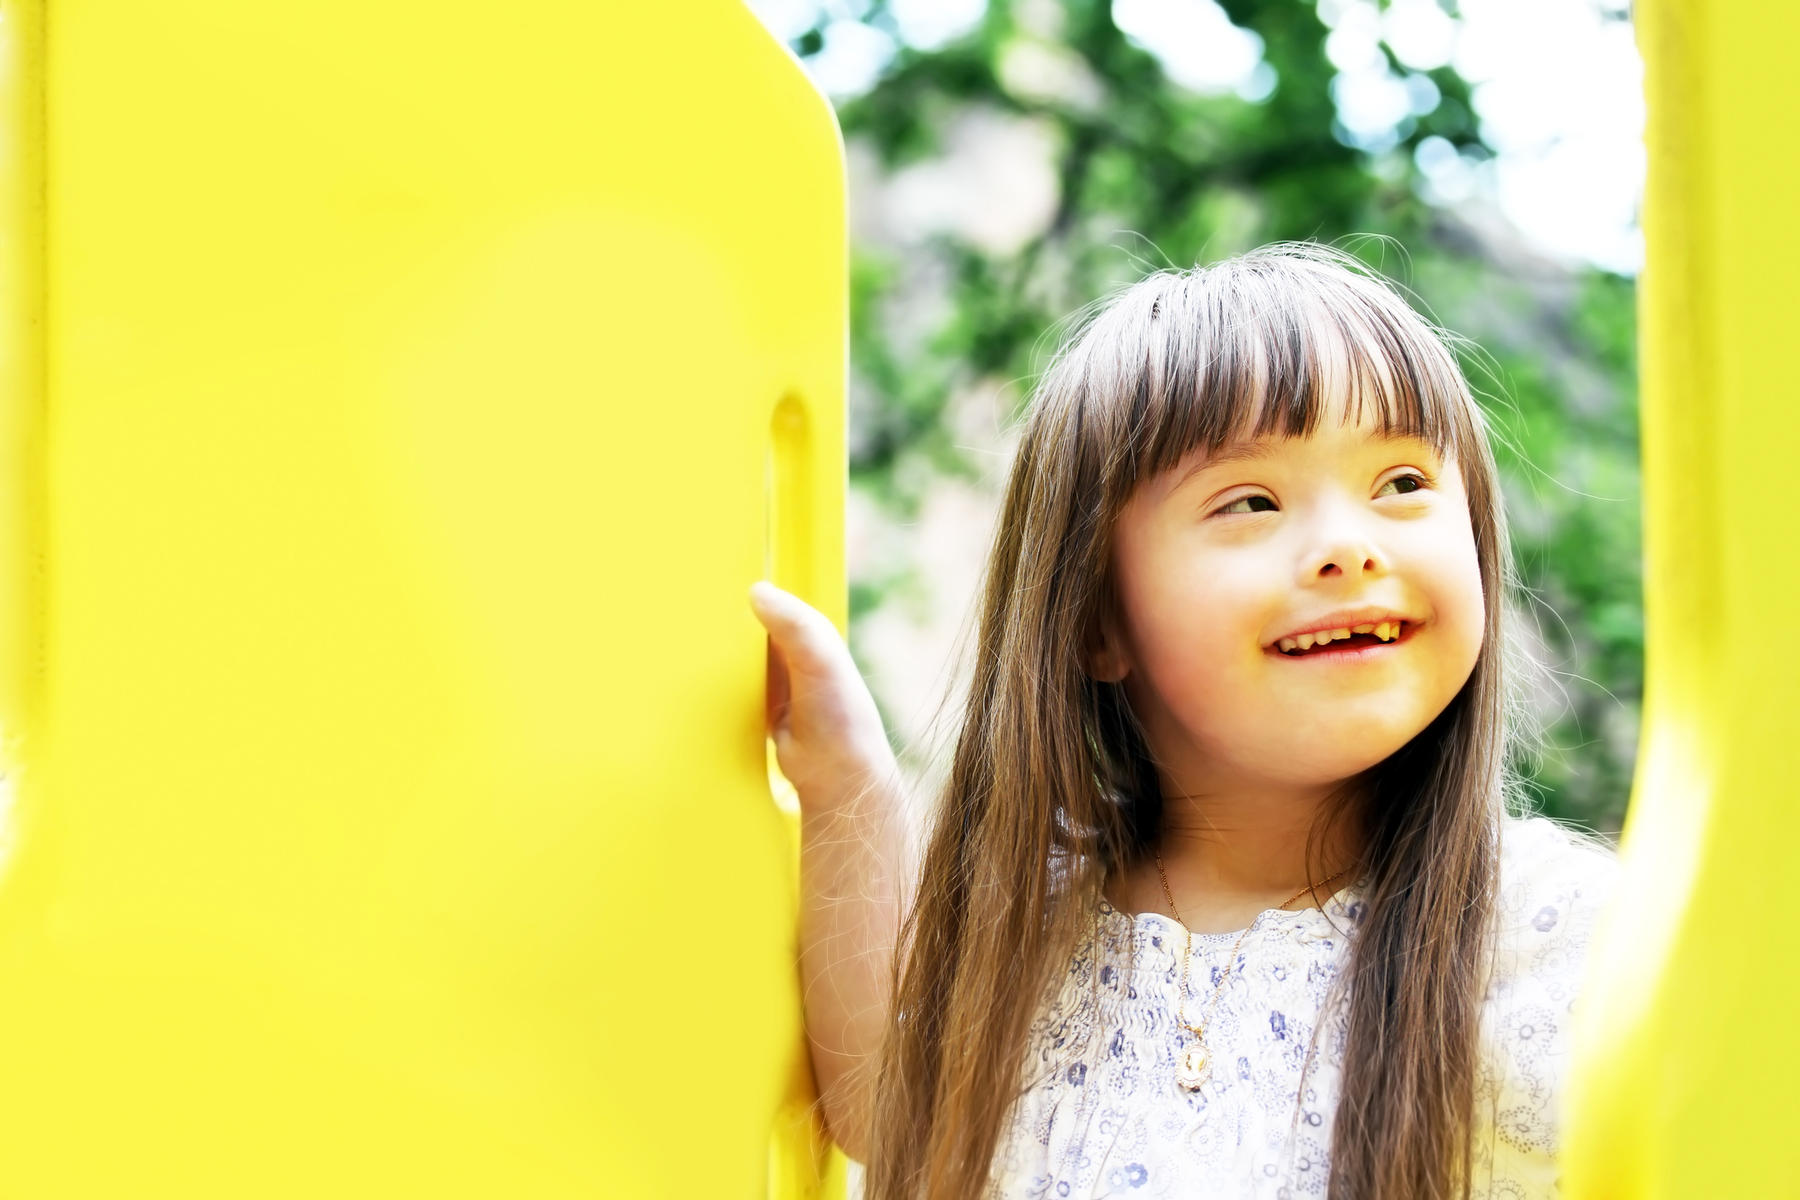 smiling young girl with down syndrome